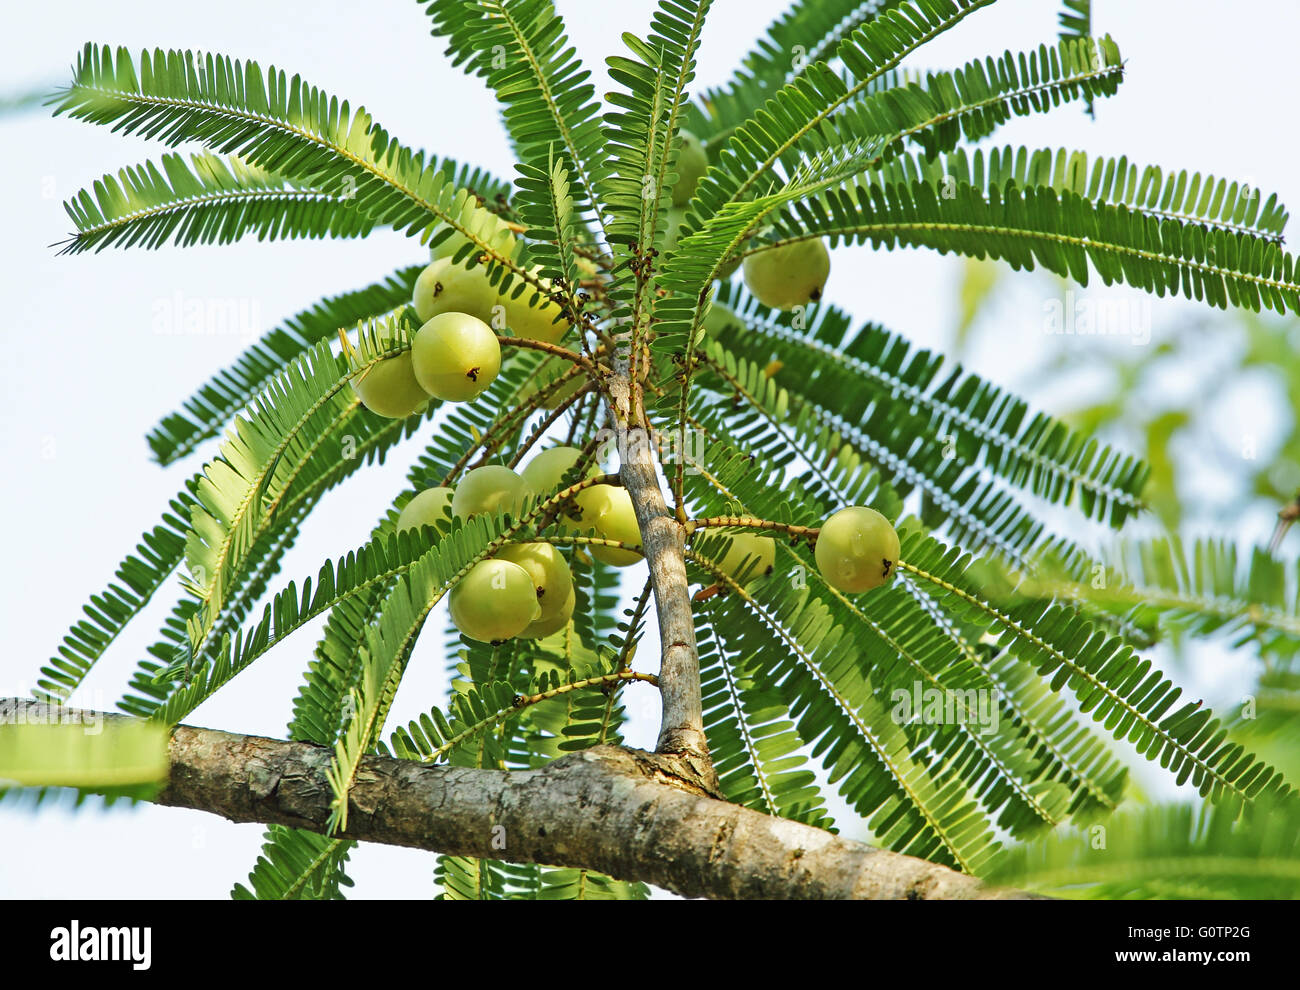 Indian gooseberry, Phyllanthus emblica. Also called amla. An essential part of  traditional Indian Ayurvedic, herbal, - Stock Image